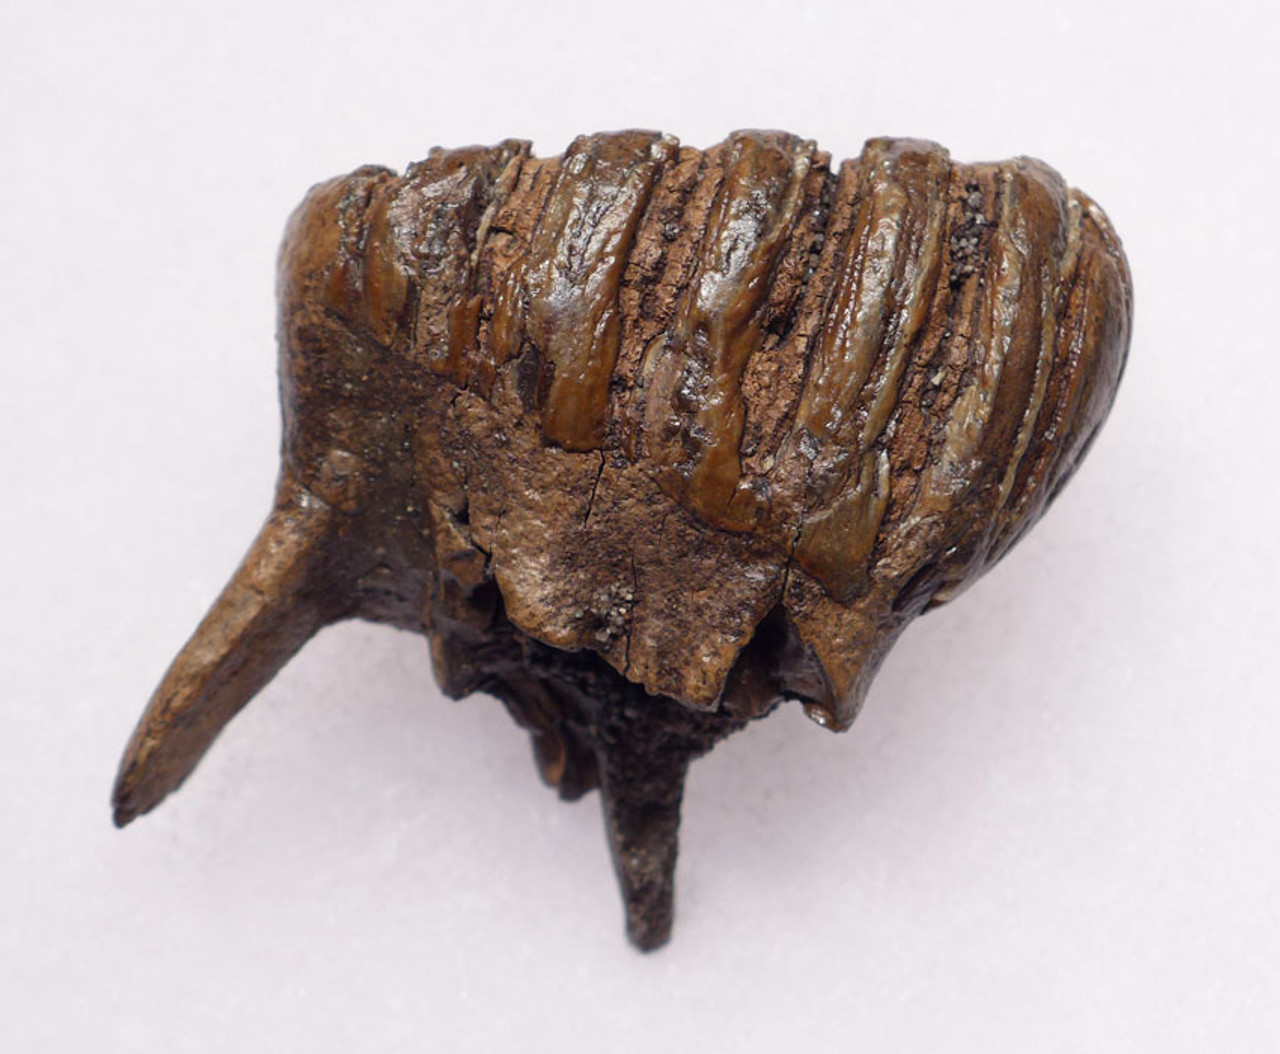 MTB003 - EXTREMELY RARE BABY CALF MERIDIONALIS SOUTHERN MAMMOTH TOOTH OF EUROPEAN ORIGIN